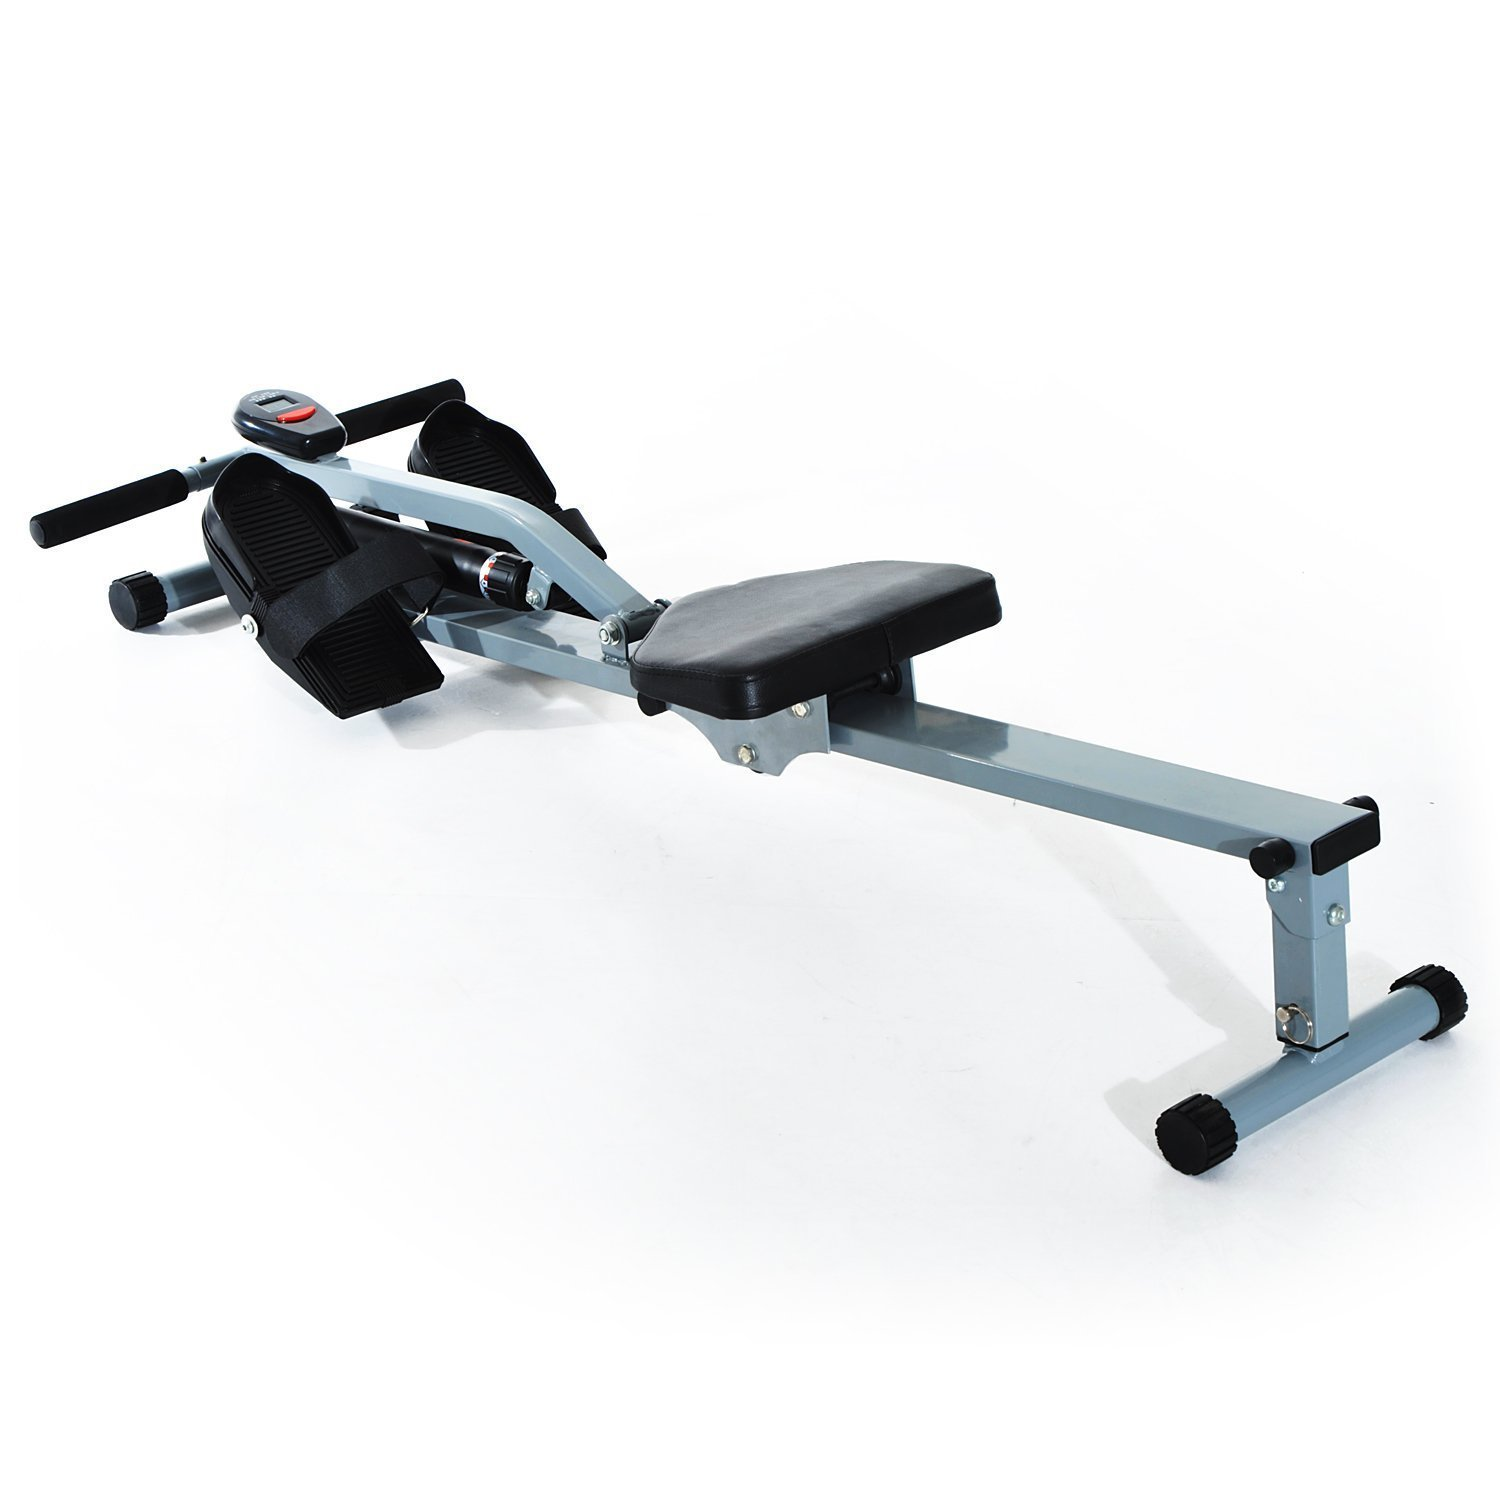 Professional HOMCOM Rowing Machine Home Fitness Workout With Display 130x67.5x67 Cm